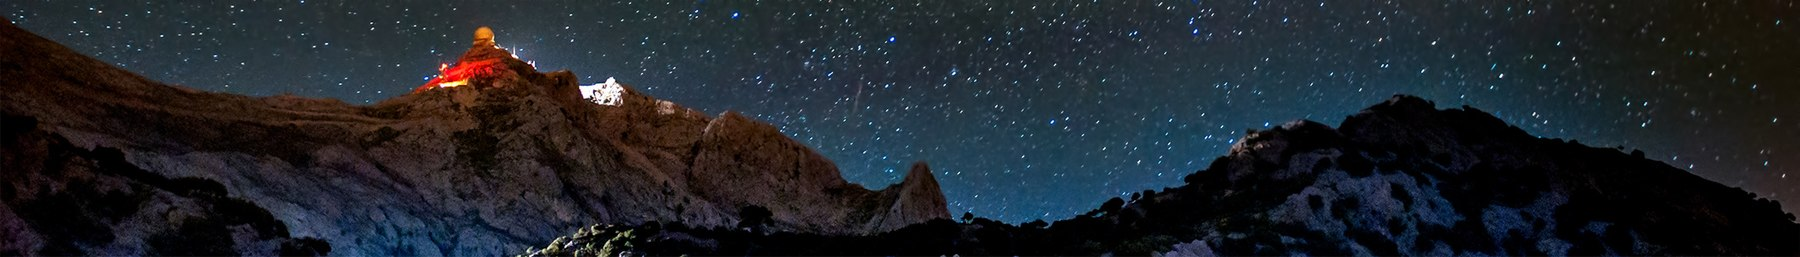 Starry night, Mallorca.jpg